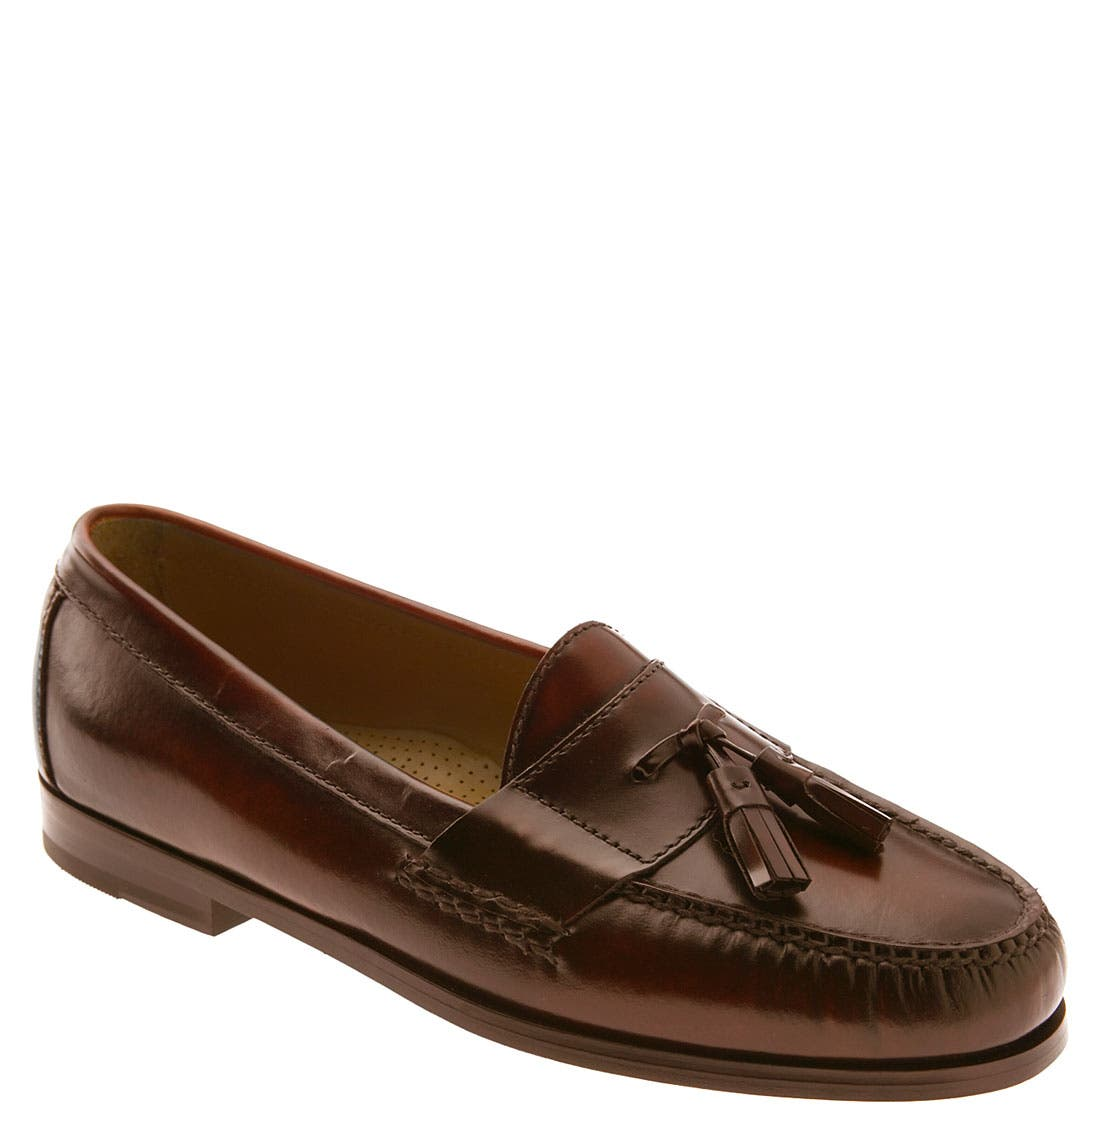 Main Image - Cole Haan 'Pinch' Tassel Loafer (Men)